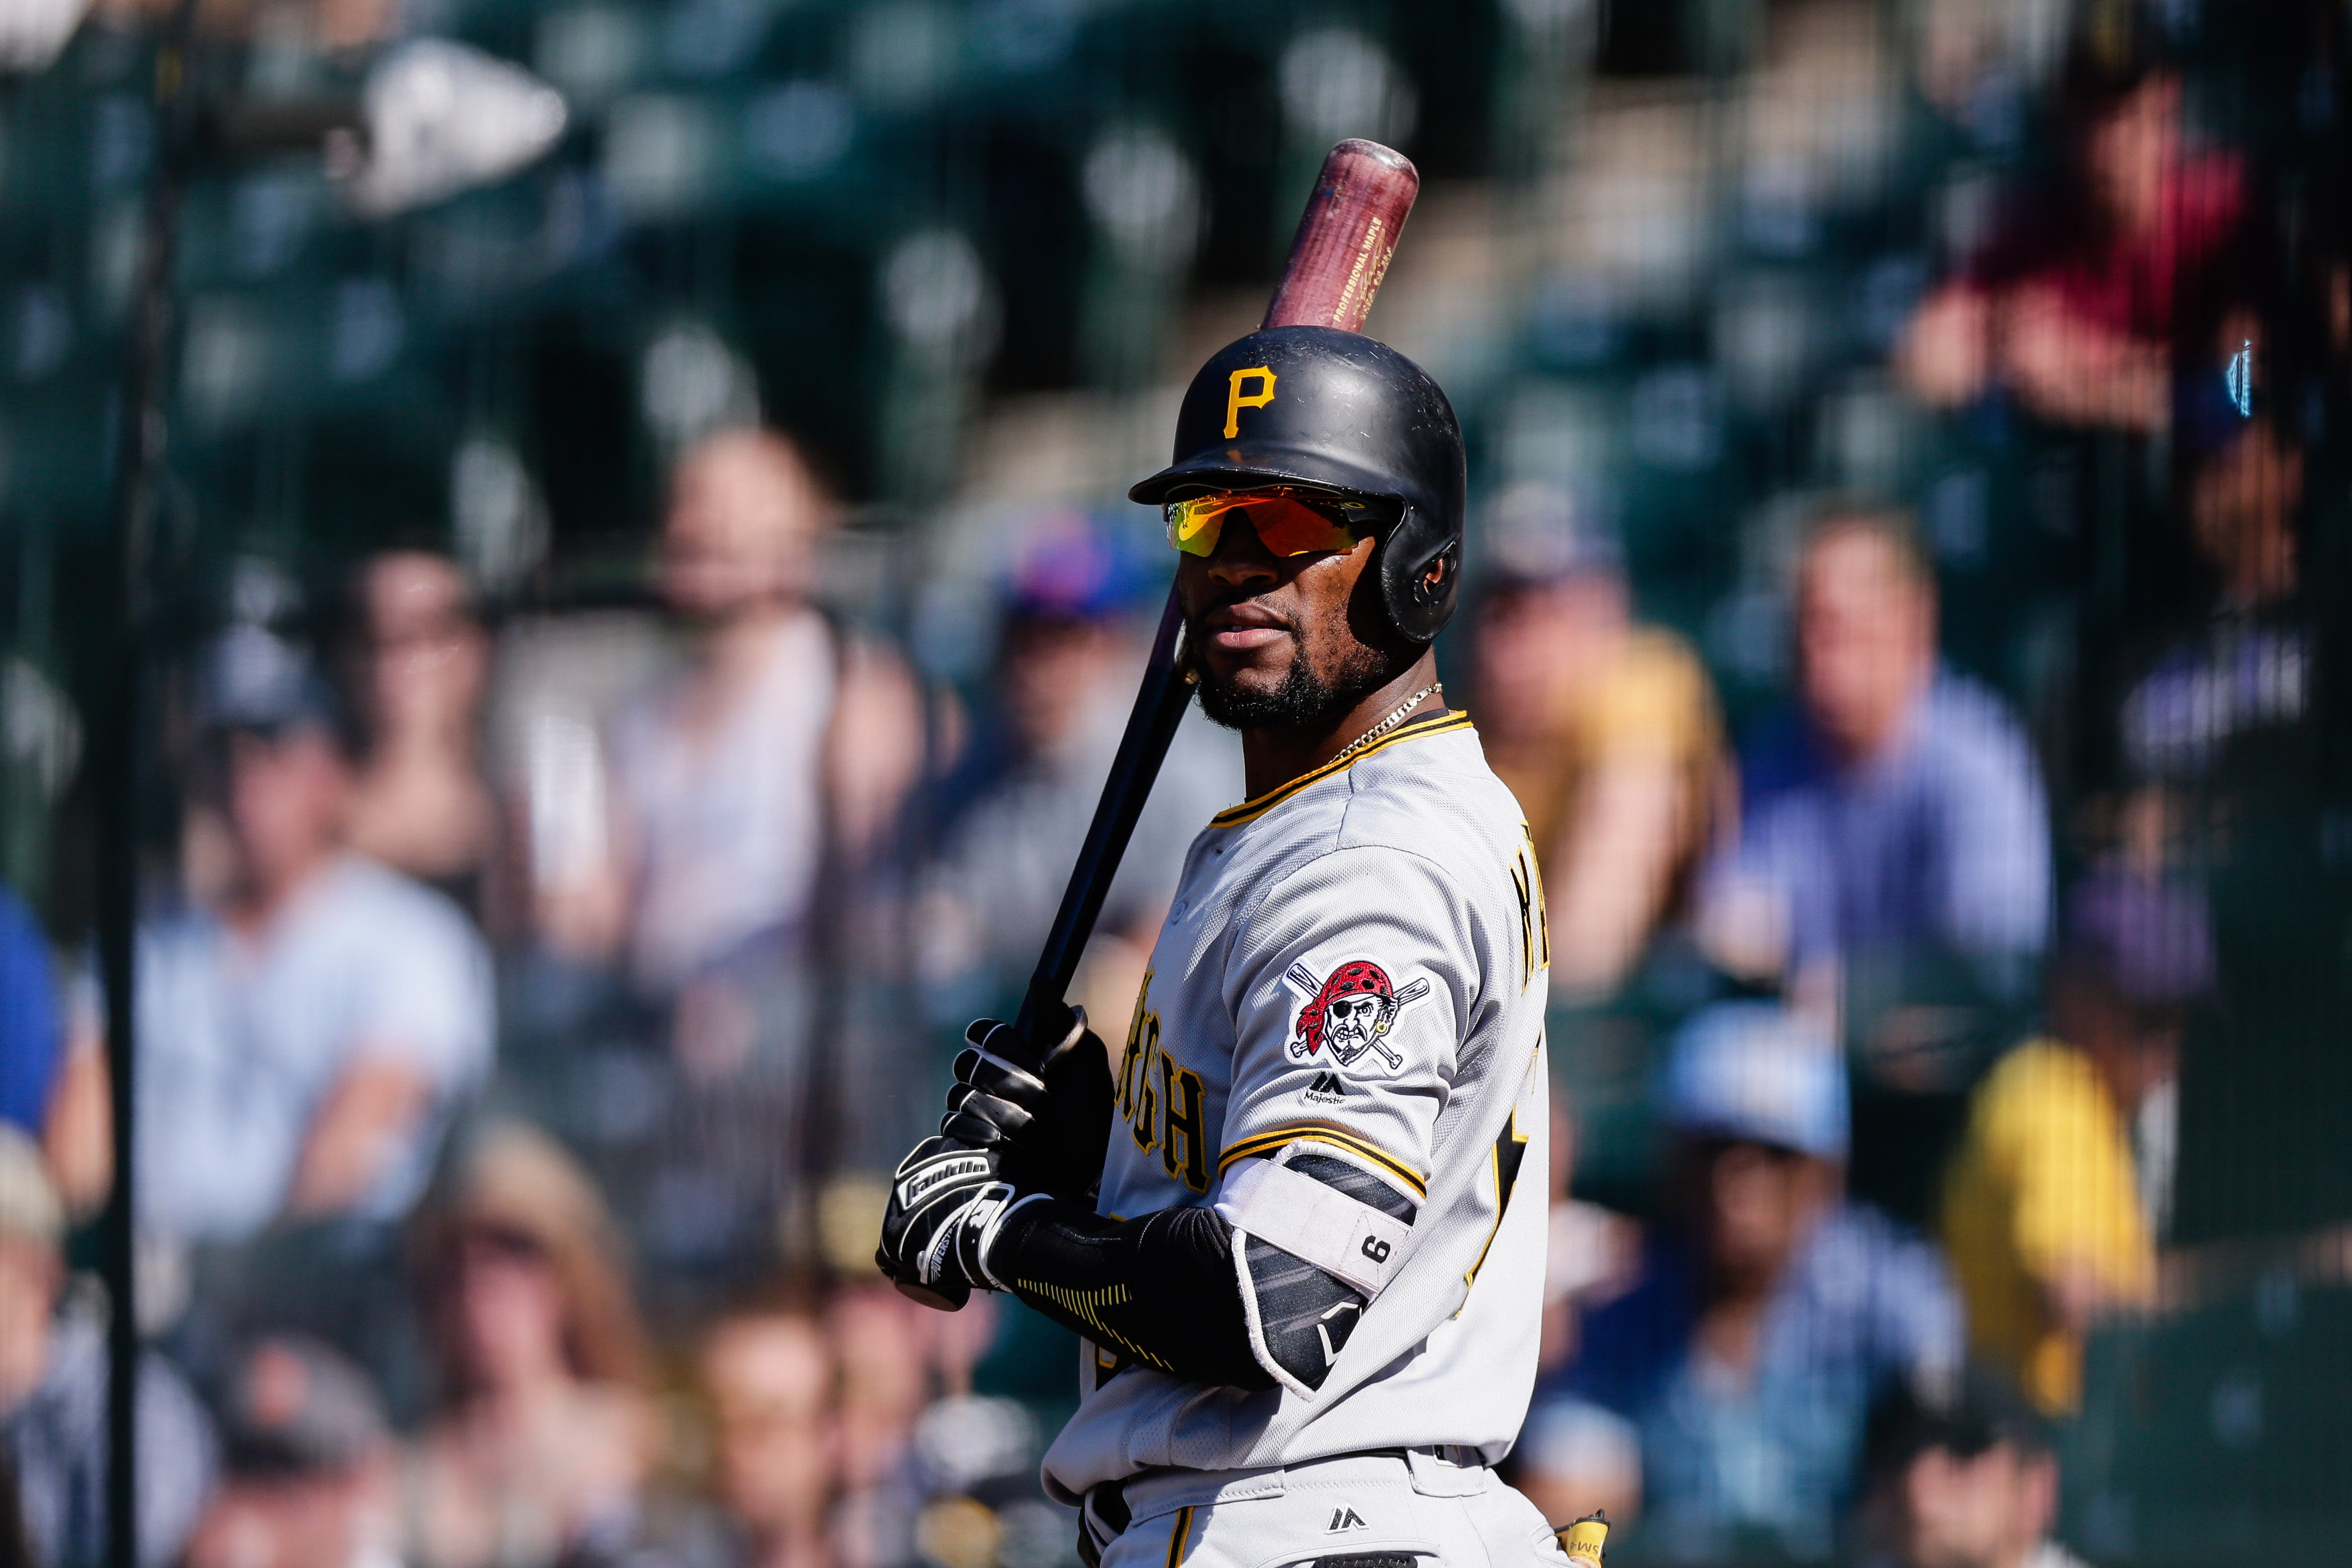 As Starling Marte exits after PED bust, Pirates, McCutchen aim to salvage '17